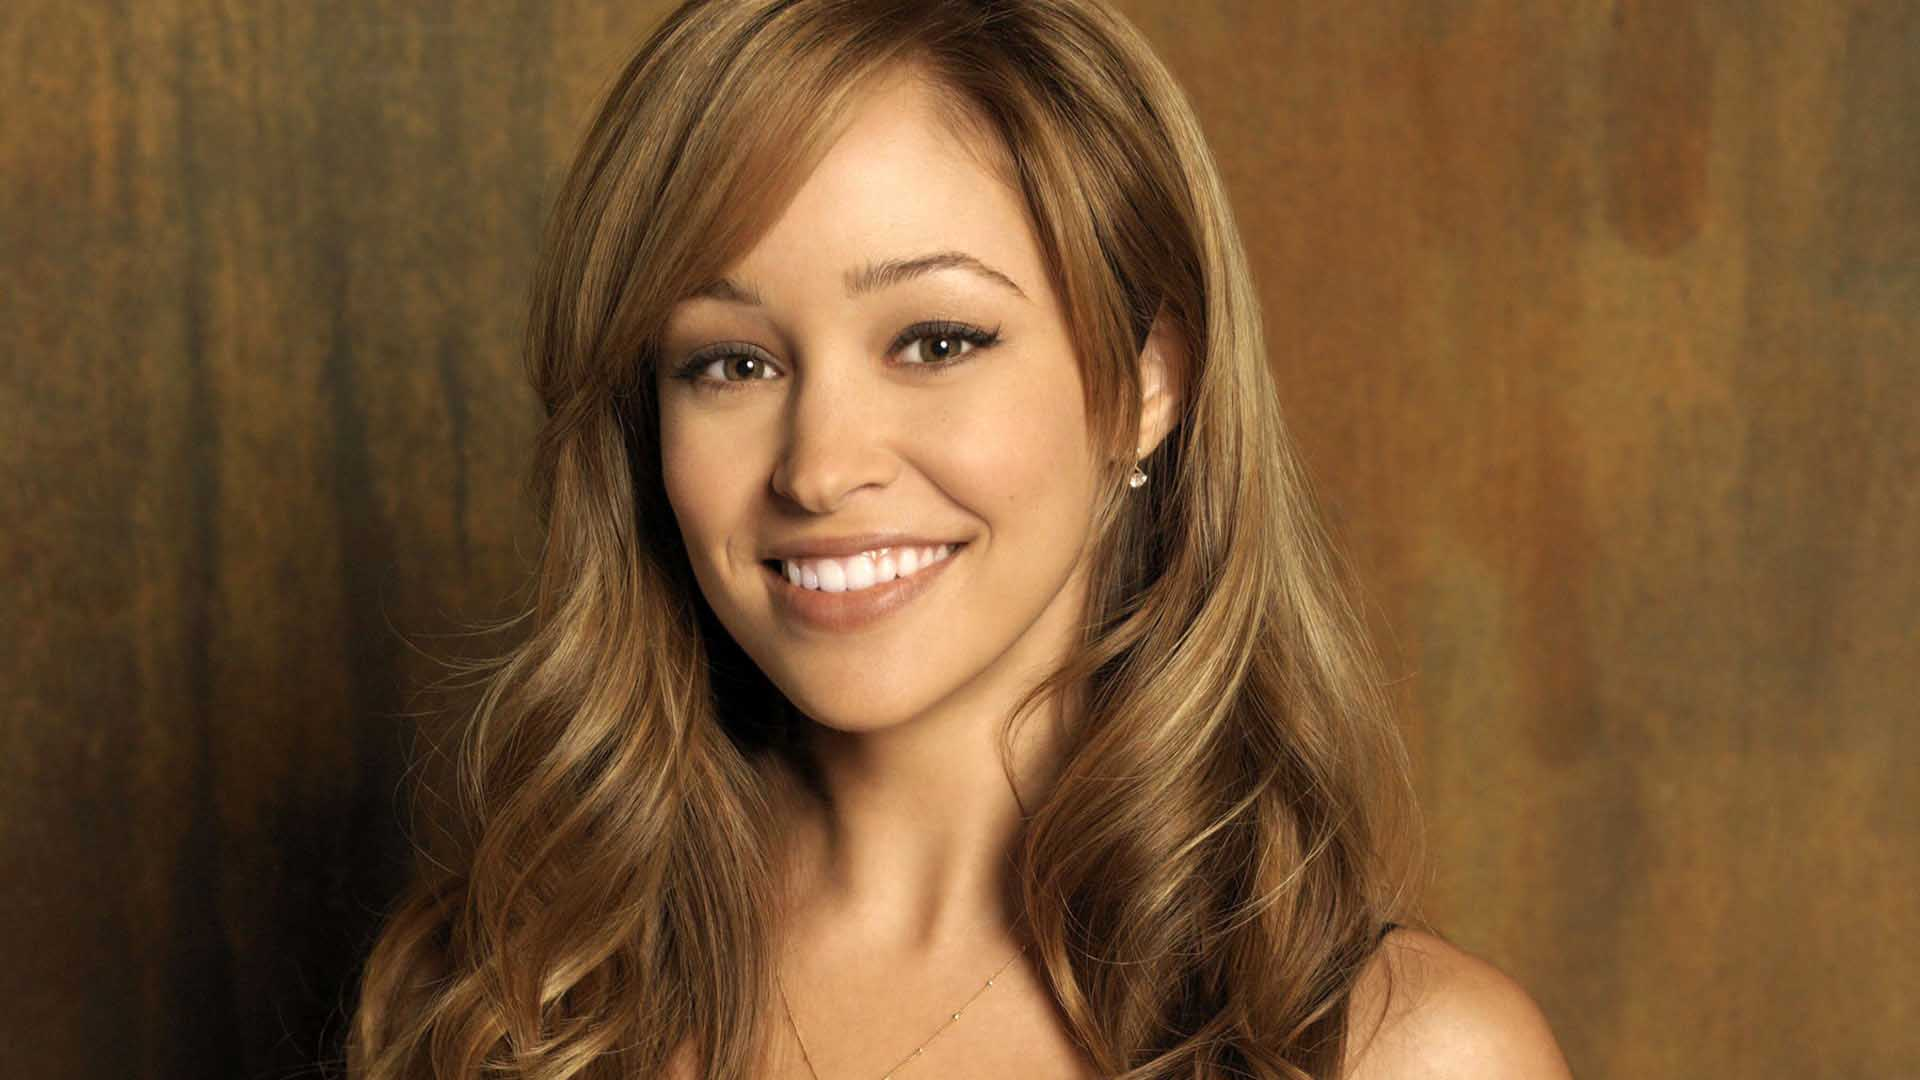 Autumn Reeser hd wallpaper Wallpaper